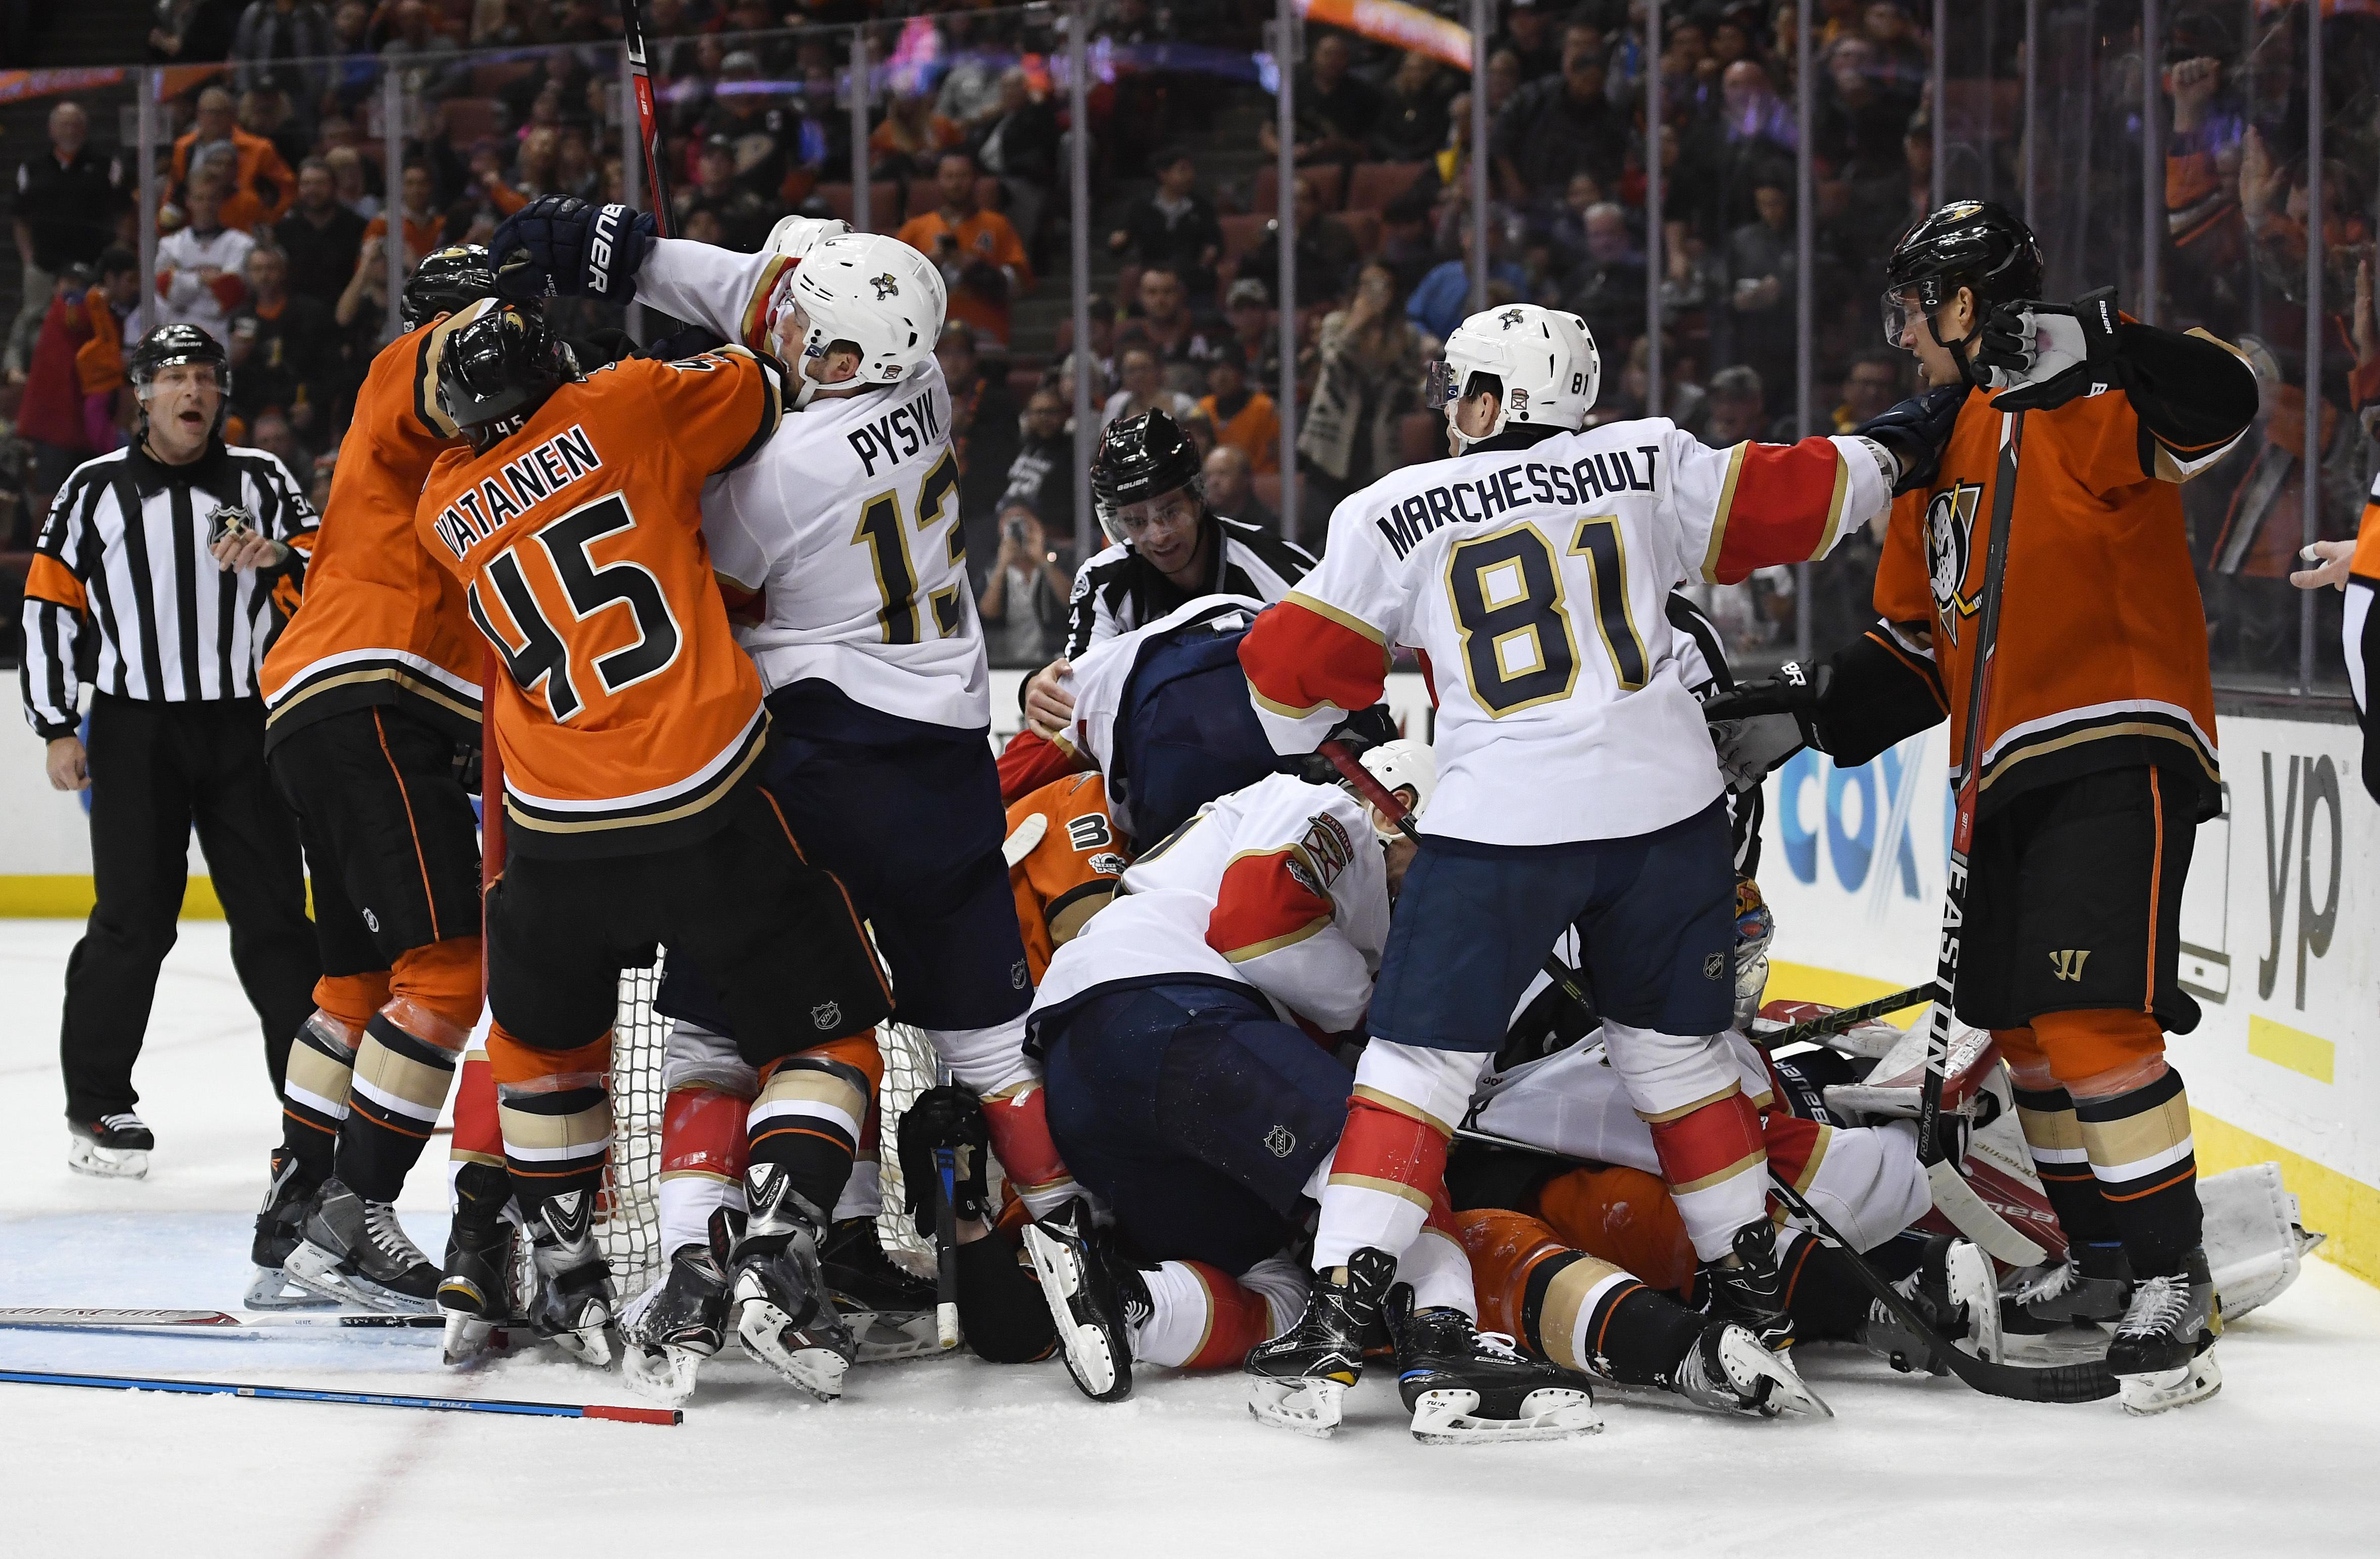 Panthers_ducks_hockey_84820